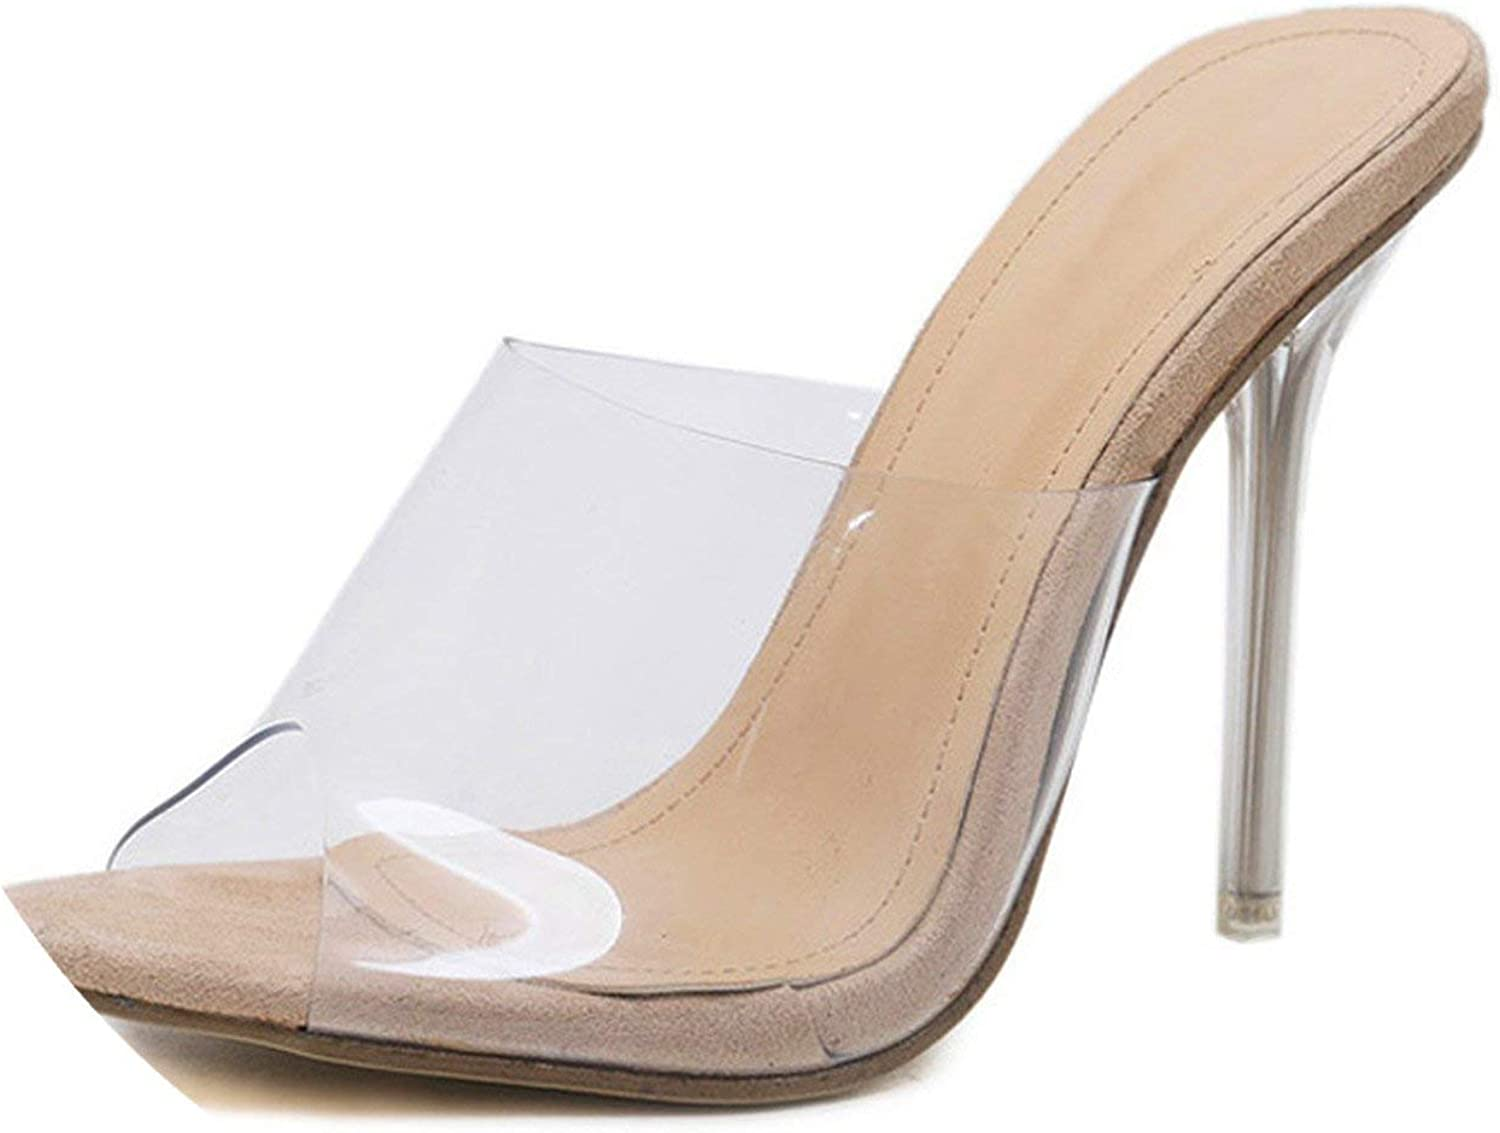 Our ideas 2019 New PVC Jelly Sandals Crystal Open Toed Sexy Thin Heels Crystal Women Transparent Heel Sandals Slippers Pumps